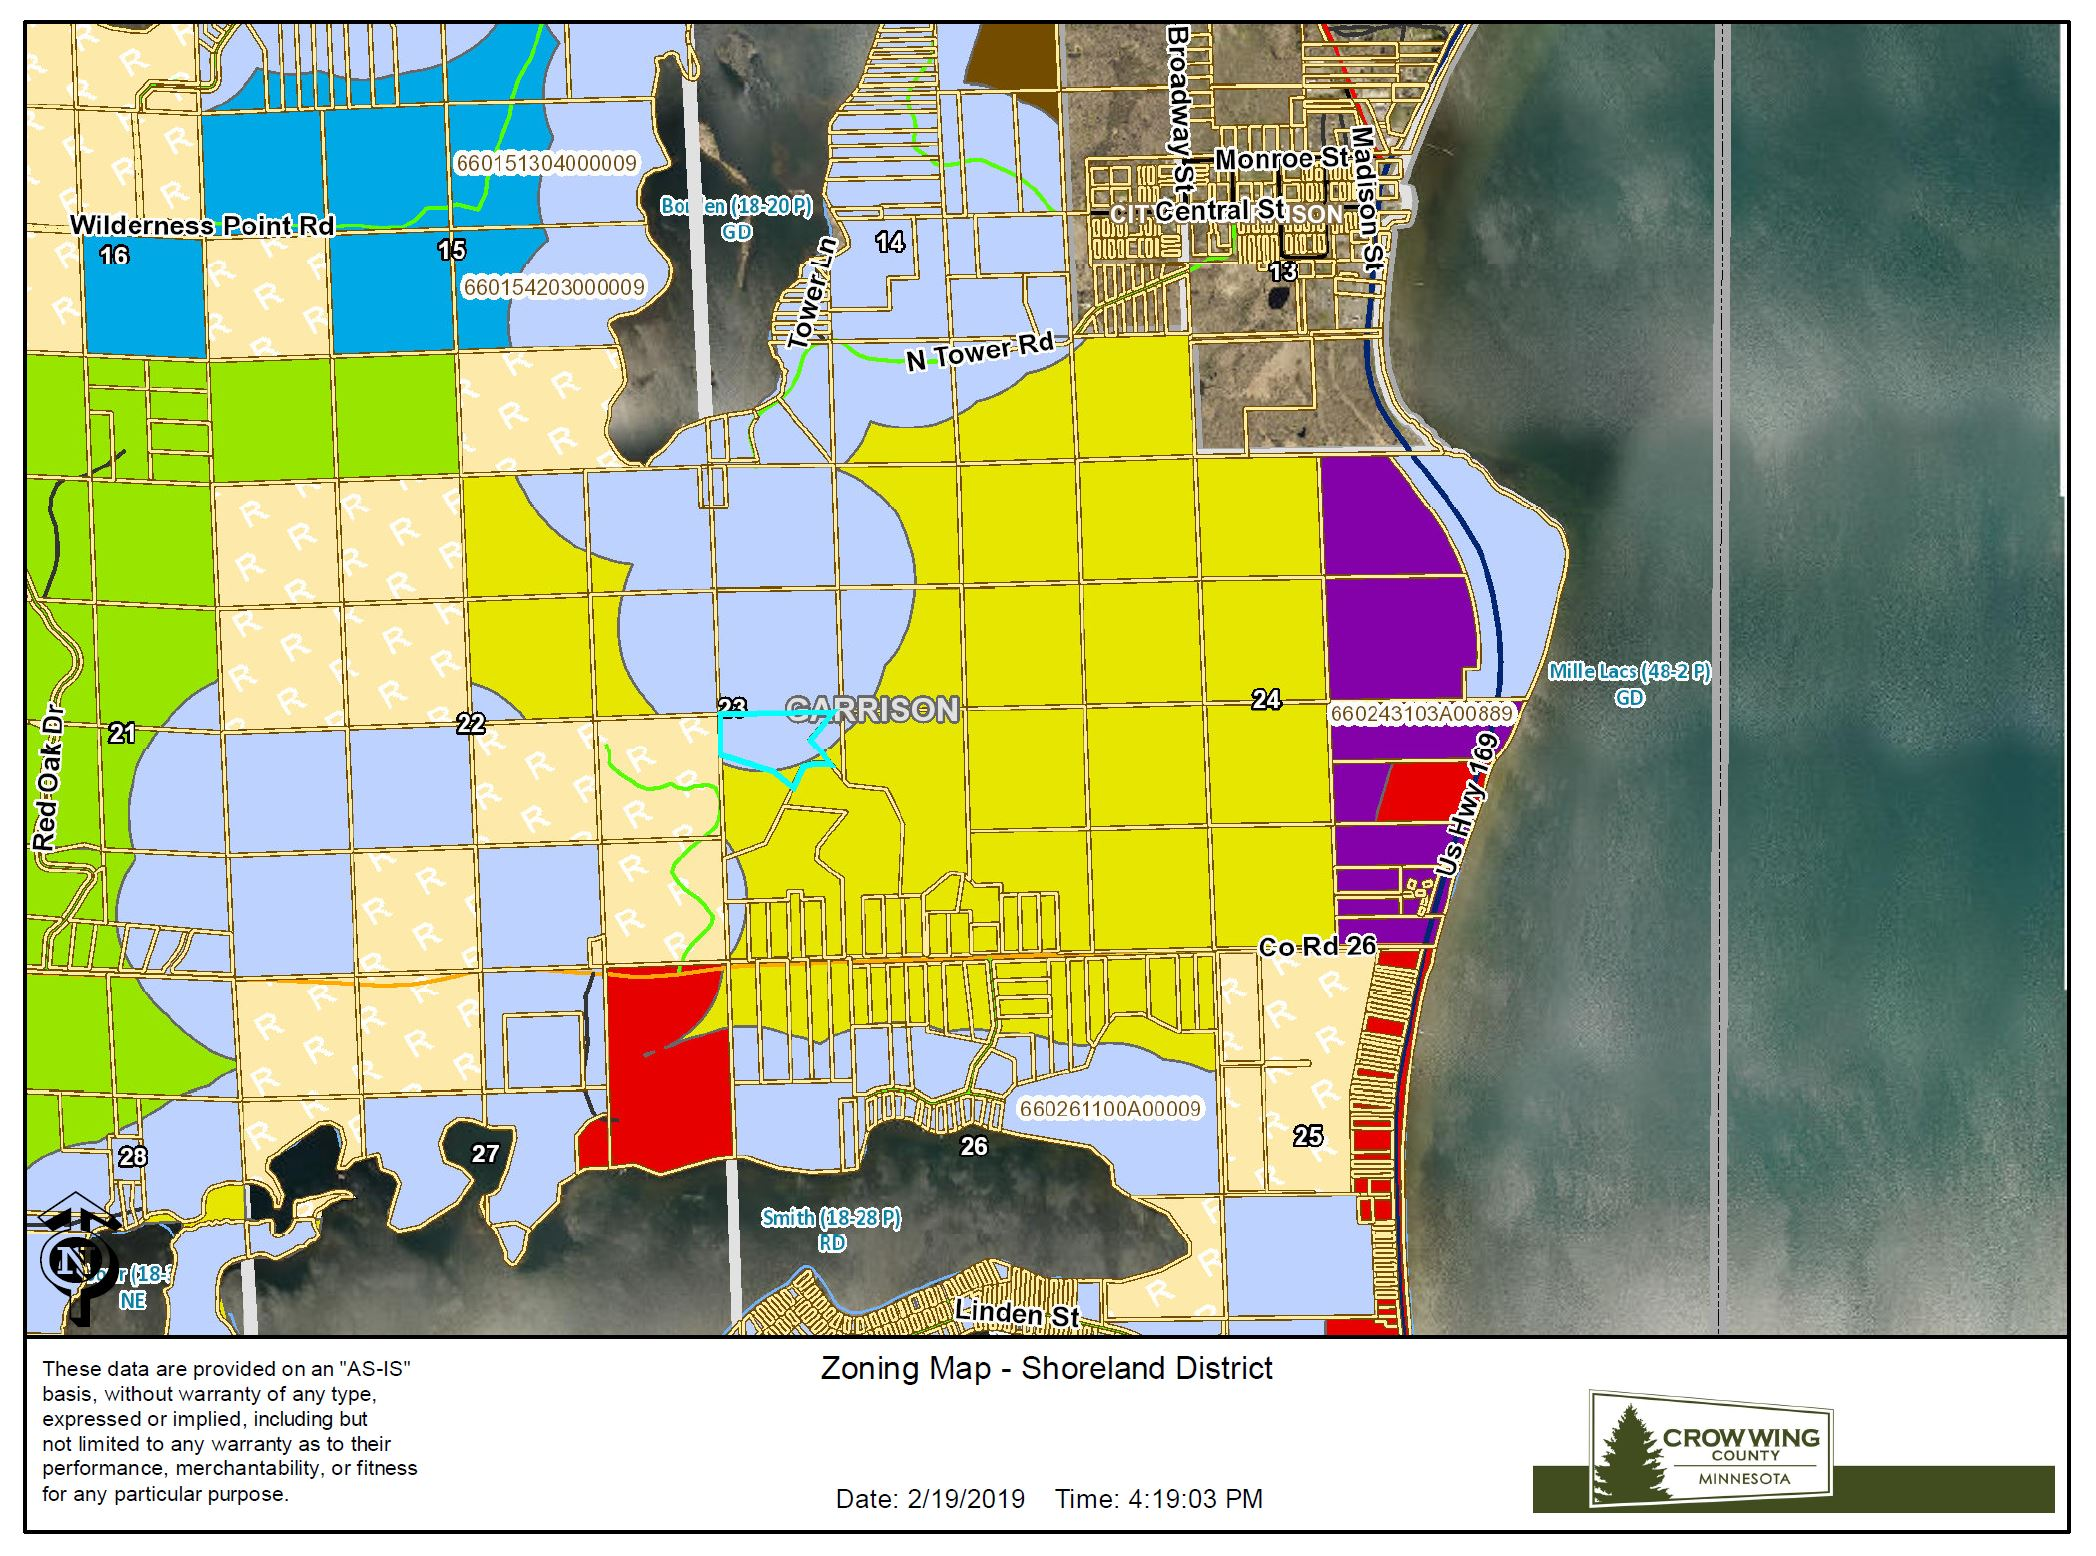 Zoning Map<br>(Doc 8 of 8)